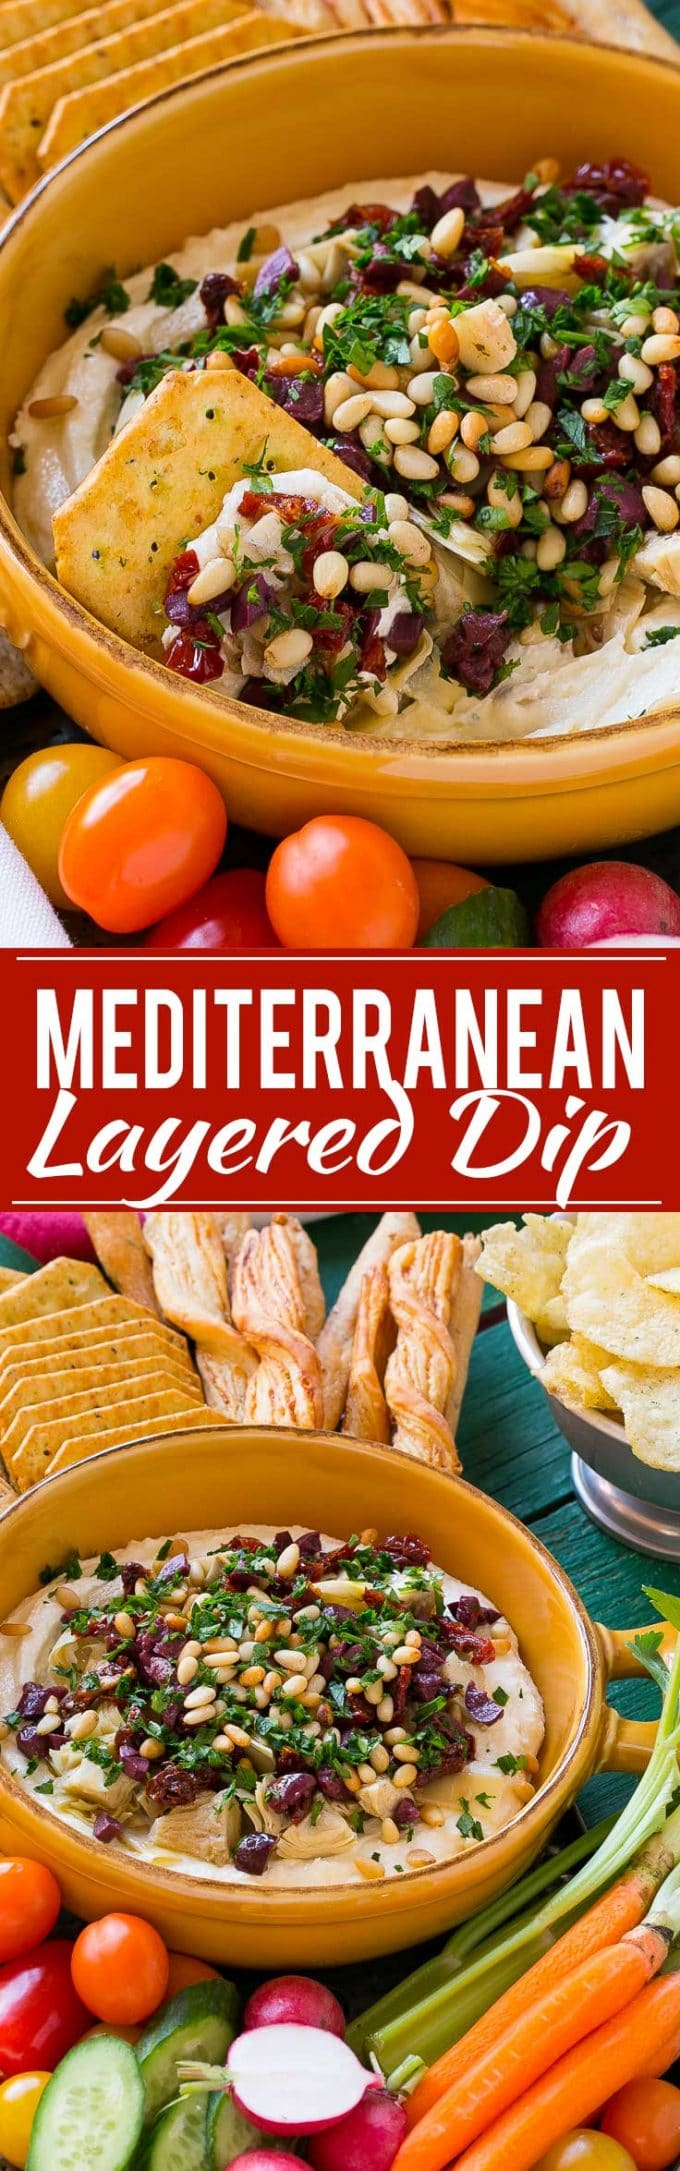 Mediterranean Layered Dip Recipe | Mediterranean Dip Recipe | Greek Dip Recipe | Layered Feta Cheese Dip | Easy Mediterranean Dip | Best Feta Cheese Dip